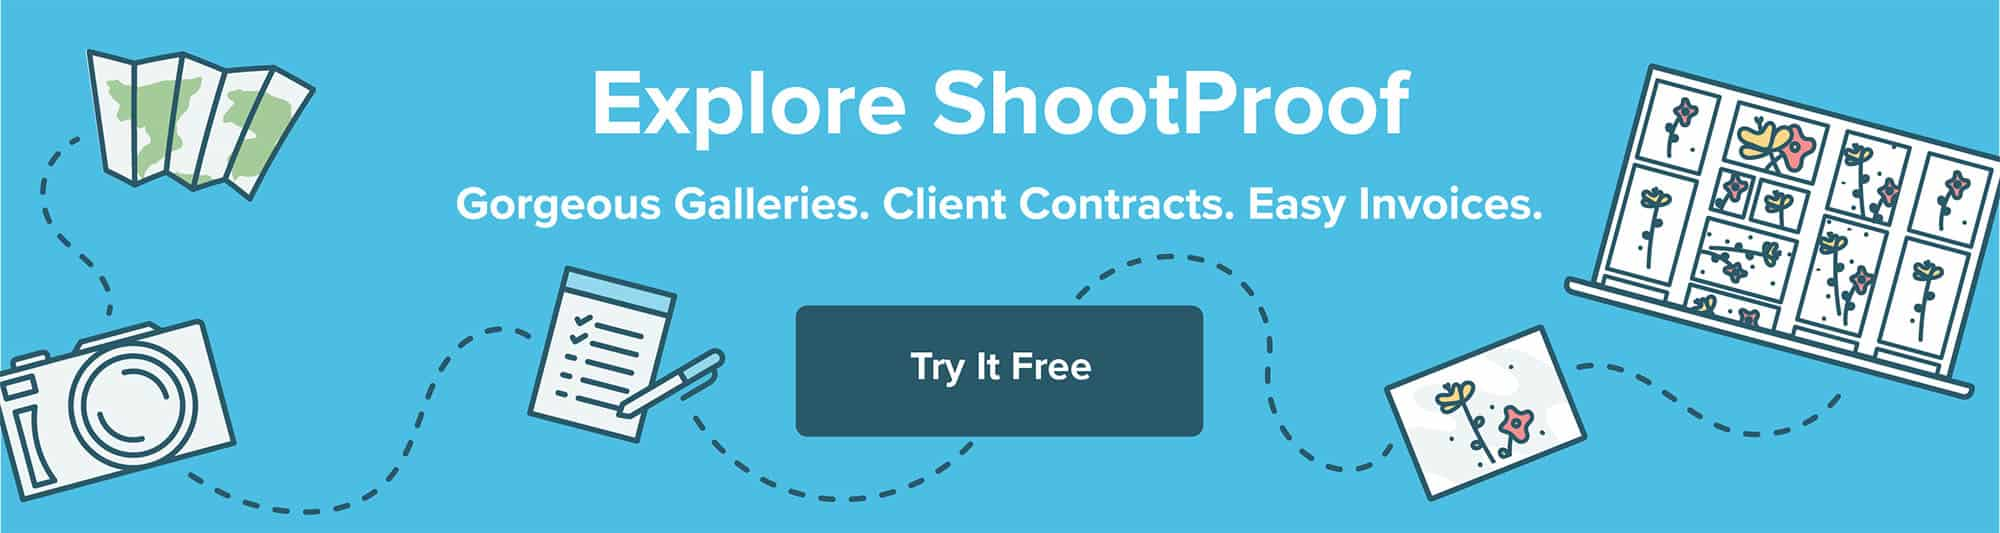 Try ShootProof for FREE